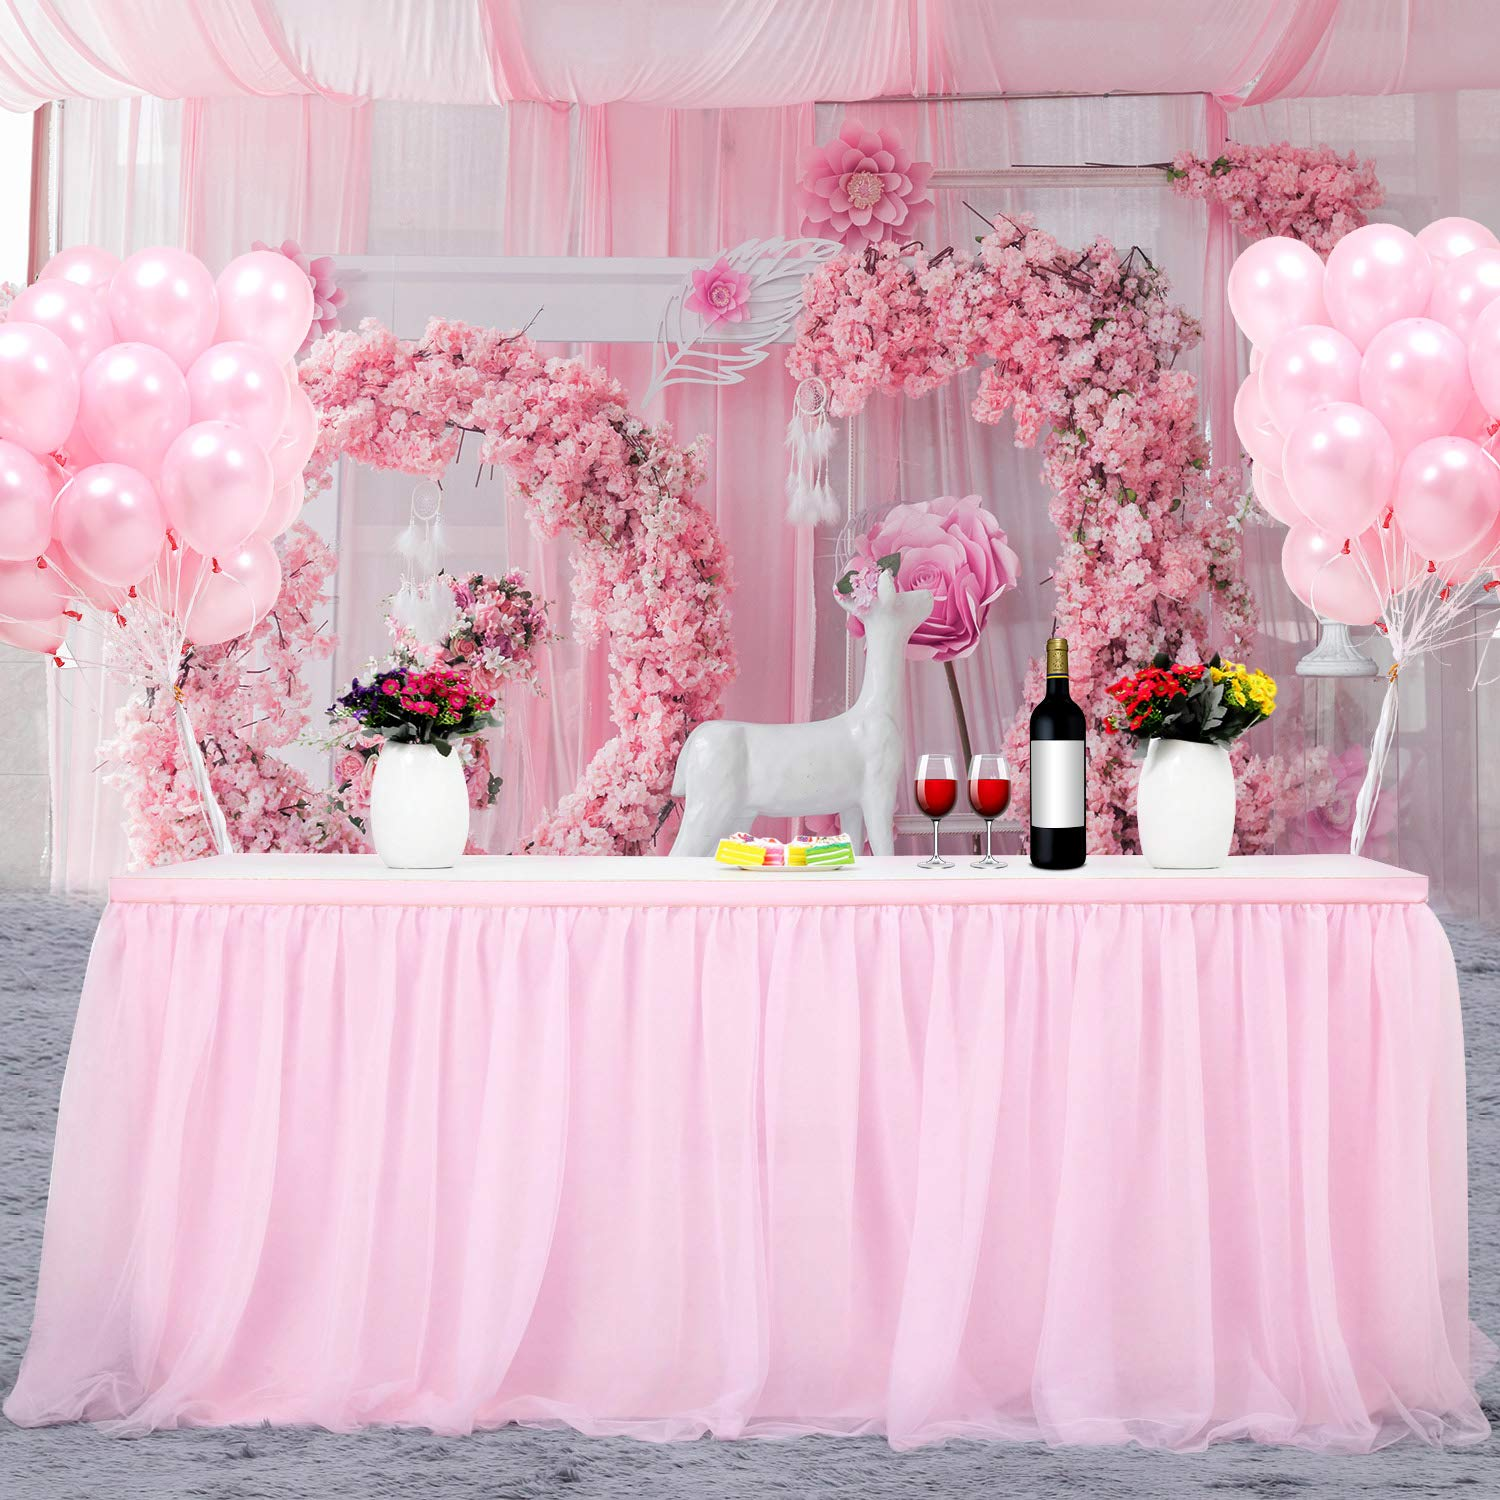 Home Decoration Tulle Table Skirt H30in, Pink Wedding L6 Banquet ft FAMIROSA Tutu Tablecloth Skirting for Rectangle or Round Tables for Party Baby Shower Christmas